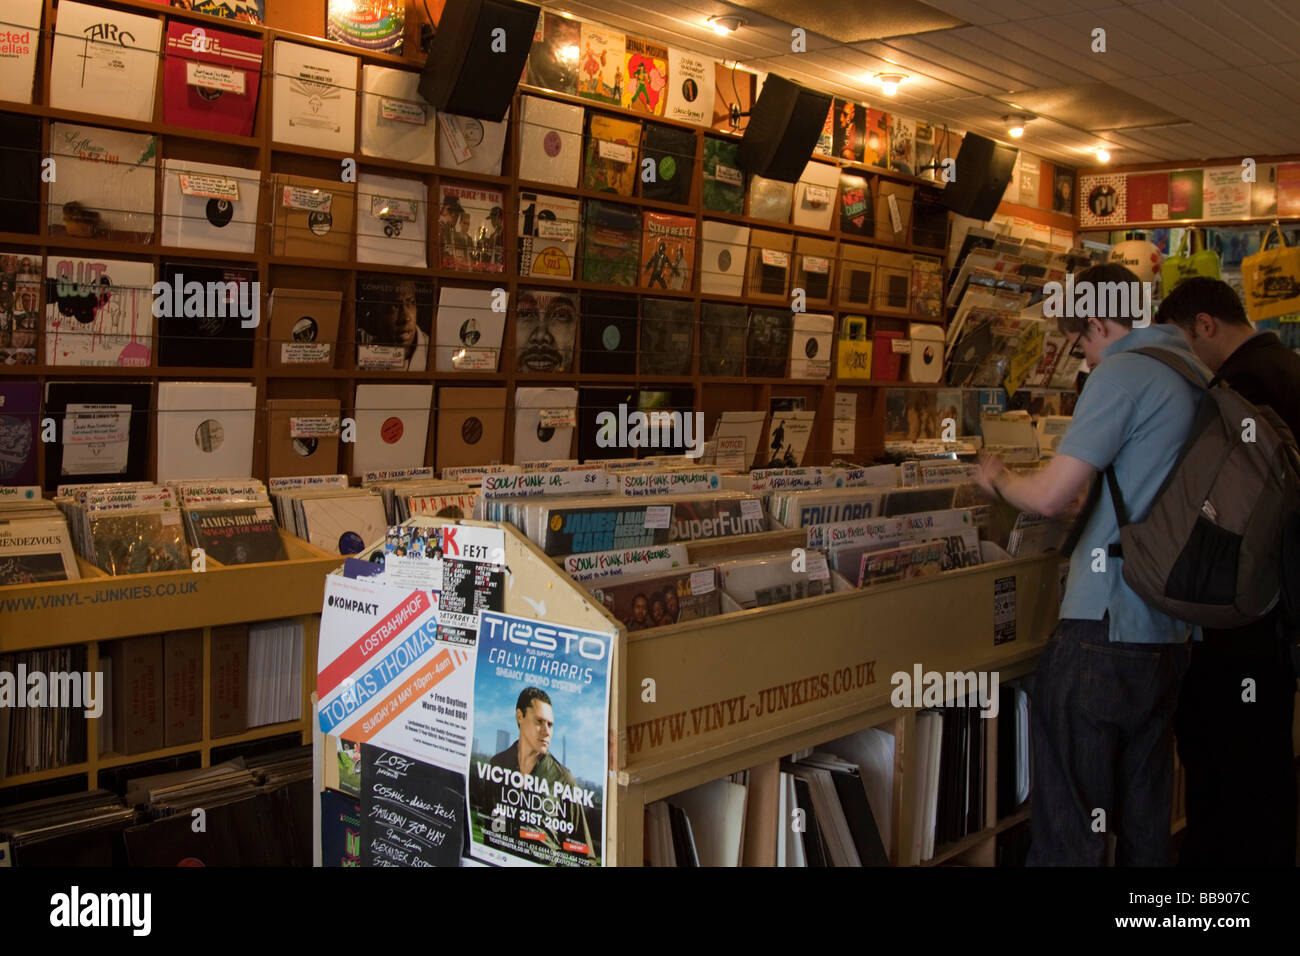 Vinyl Junkies Specialist Record Shop Berwick Street London ...